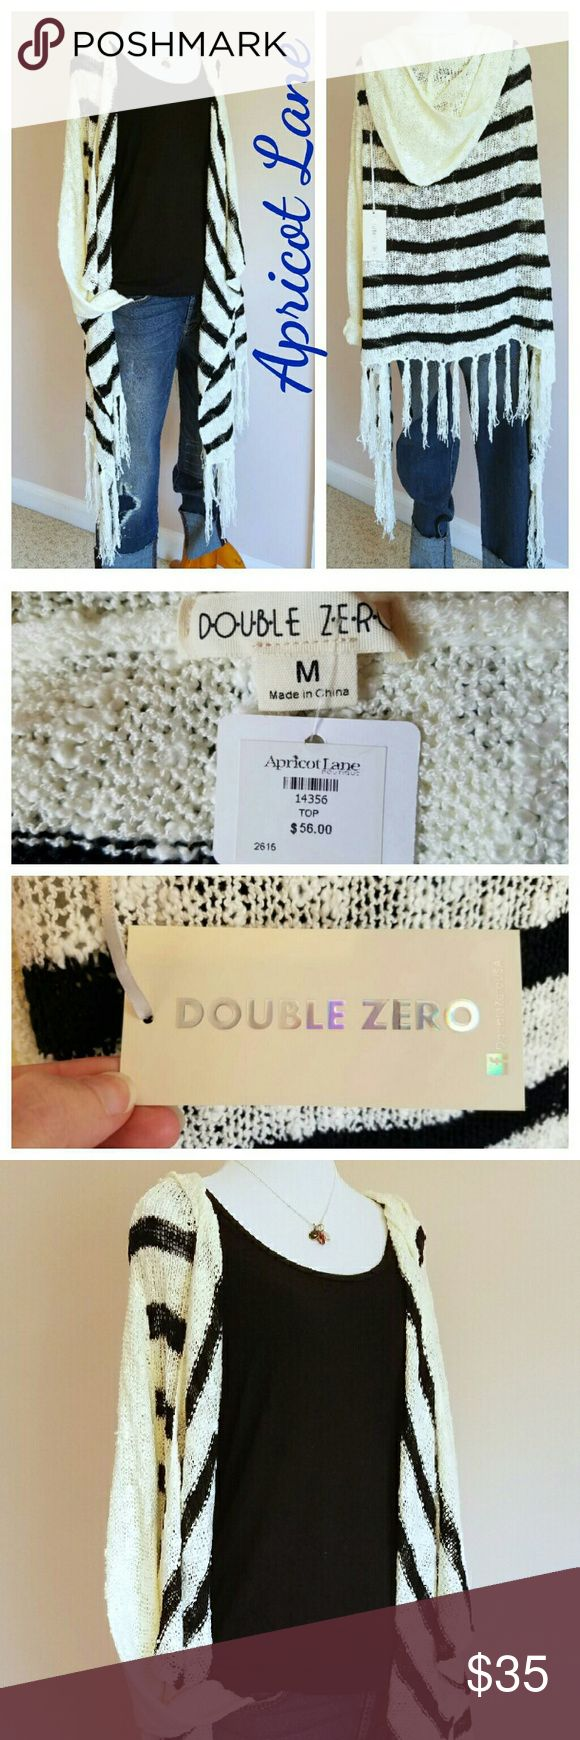 """Apricot Lane Hooded Striped Fringe Cardigan NWT loose knit hooded cardigan with fringe trim by Double Zero for Apricot Lane. Solid cream sleeves, hood, and fringe. Cream and black striped body. Cascading open front falls to approx 36"""" longest length  (44"""" w/fringe). Straight back hits at approx 28"""" shortest length (35"""" w/fringe). 65% cotton, 35% polyester. NWT. New condition. No flaws. Bundle 2+ items and save 20% plus combined shipping! Apricot Lane  Sweaters Cardigans"""